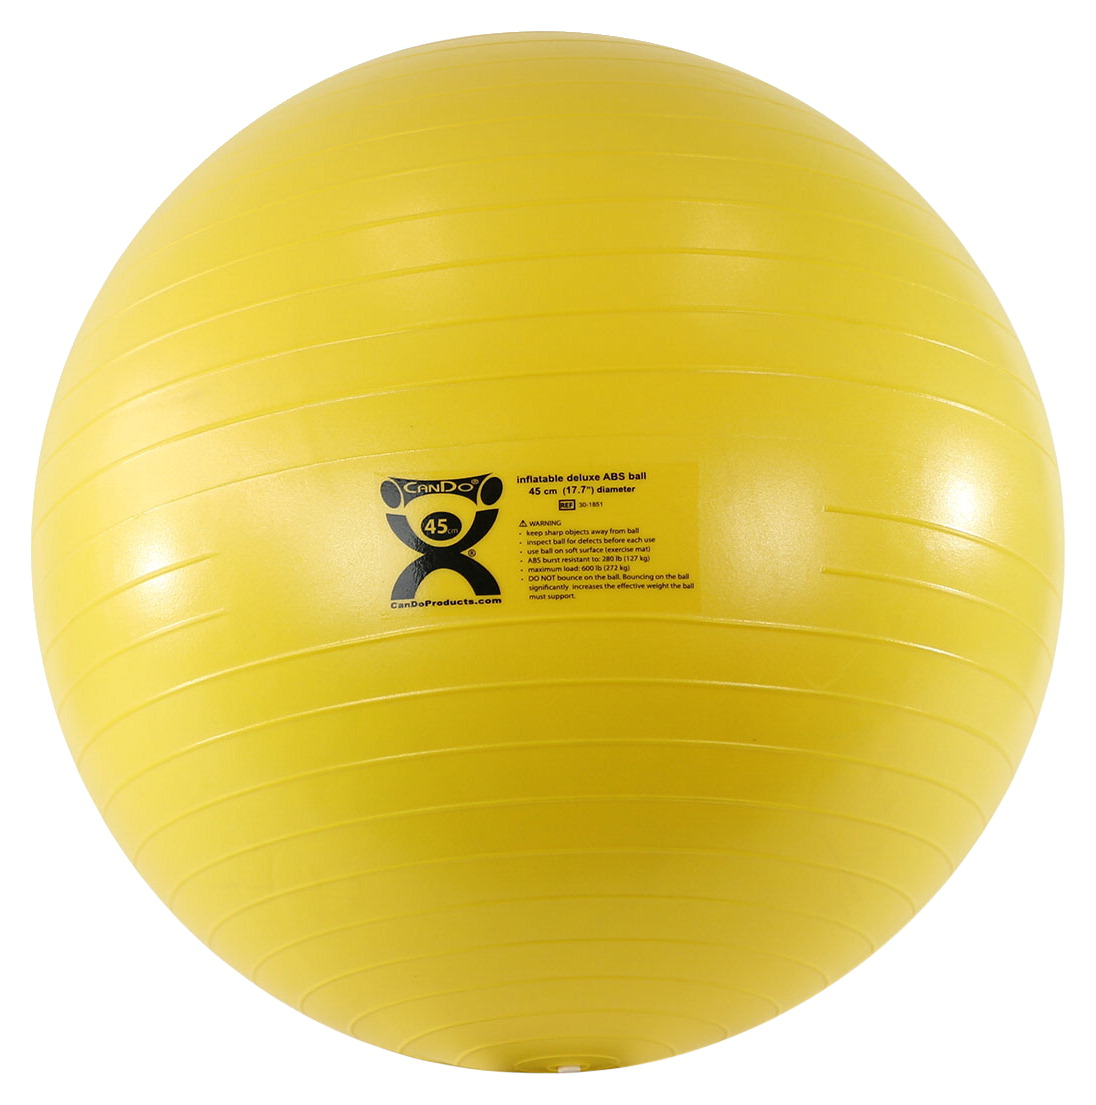 CanDo Inflatable Exercise Ball, Extra Thick ABS, 18 Inches, Yellow